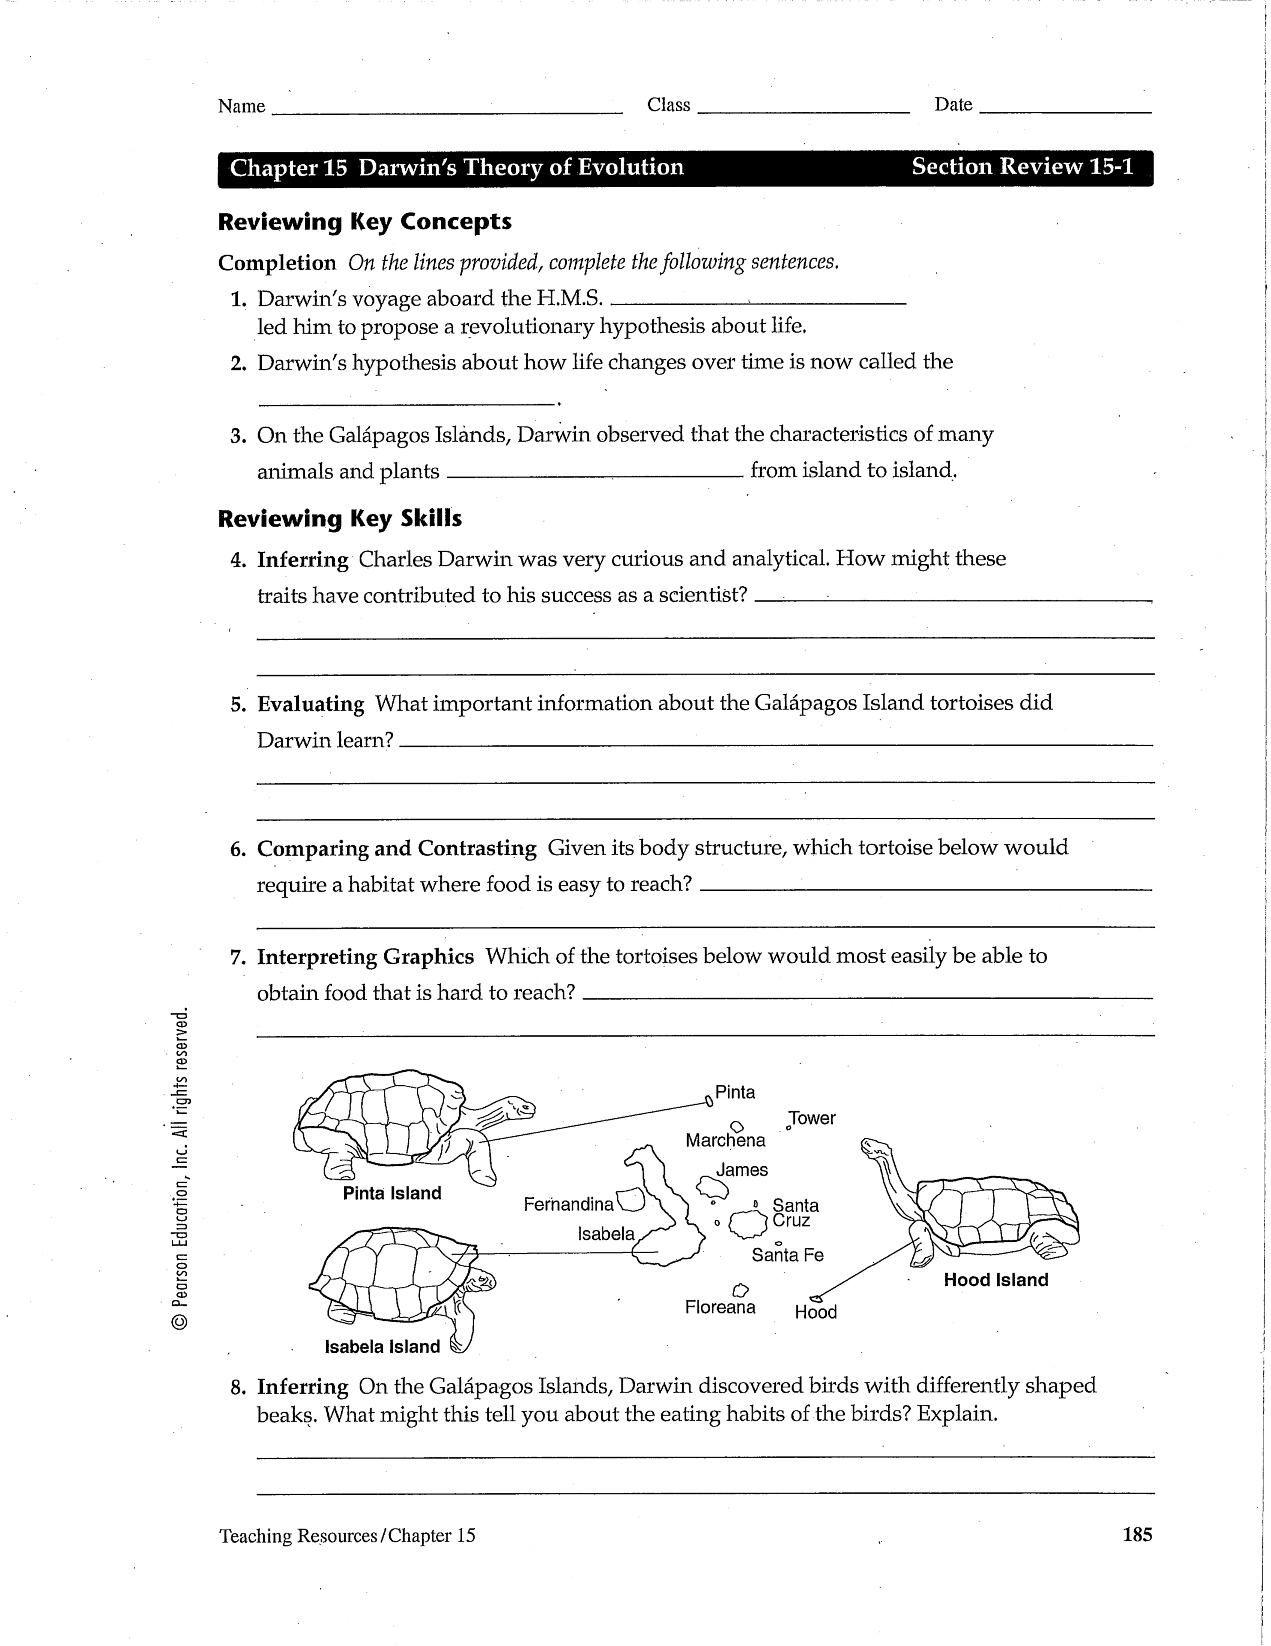 Worksheets Evolution Worksheet darwins theory of evolution worksheet chapter 15 reviewing key concepts